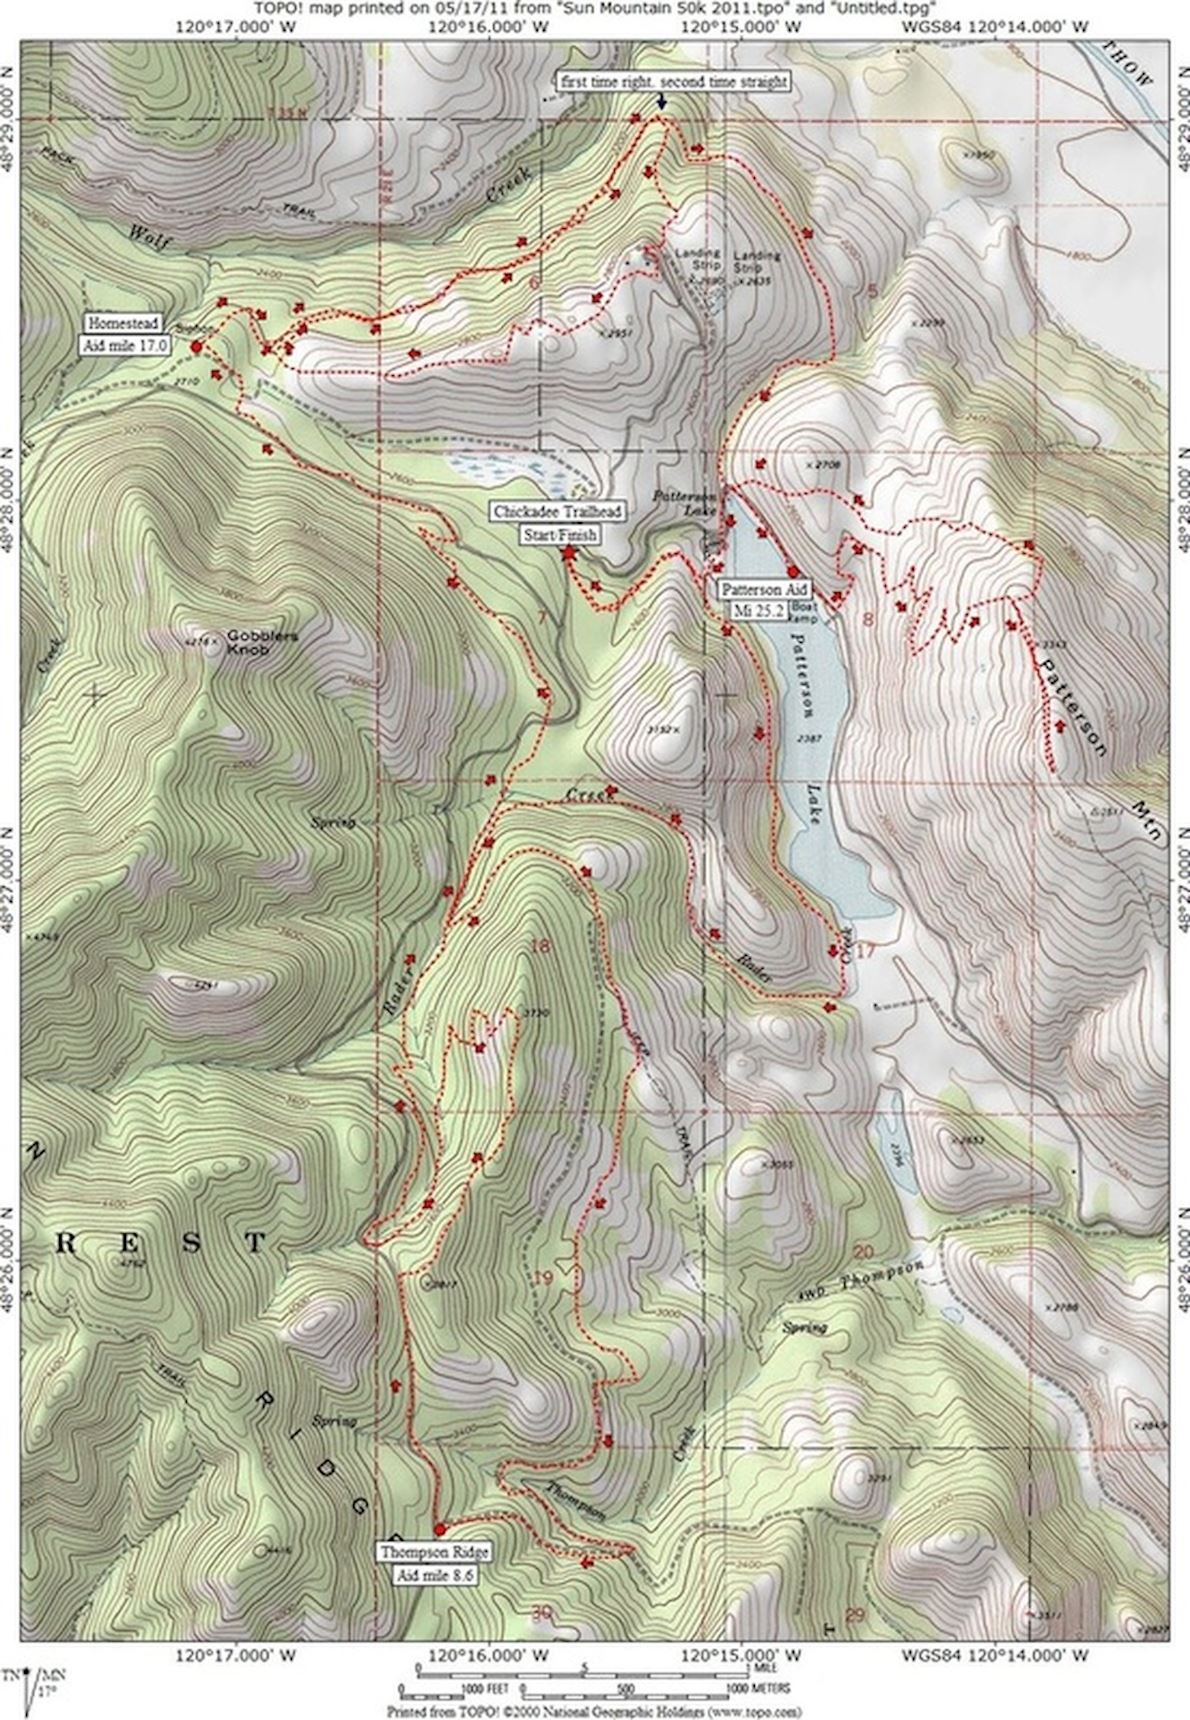 Sun Mountain 50K Route Map